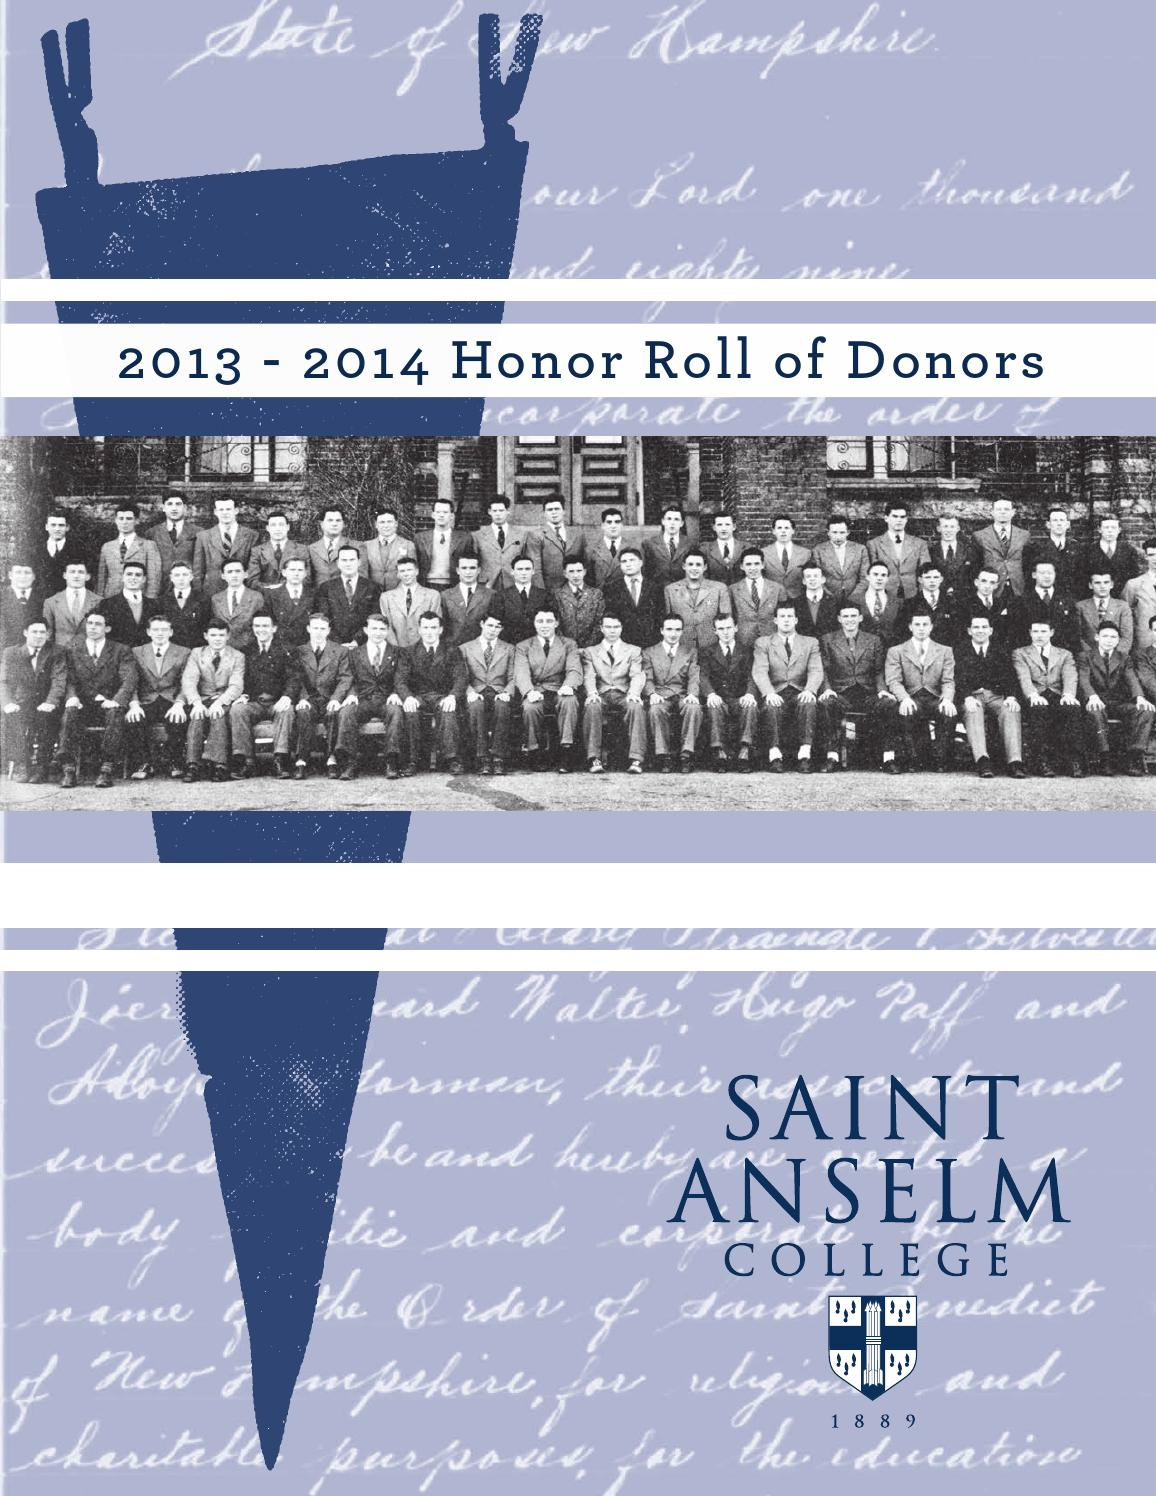 honor roll of donors 2013 2014 by saint anselm college issuu